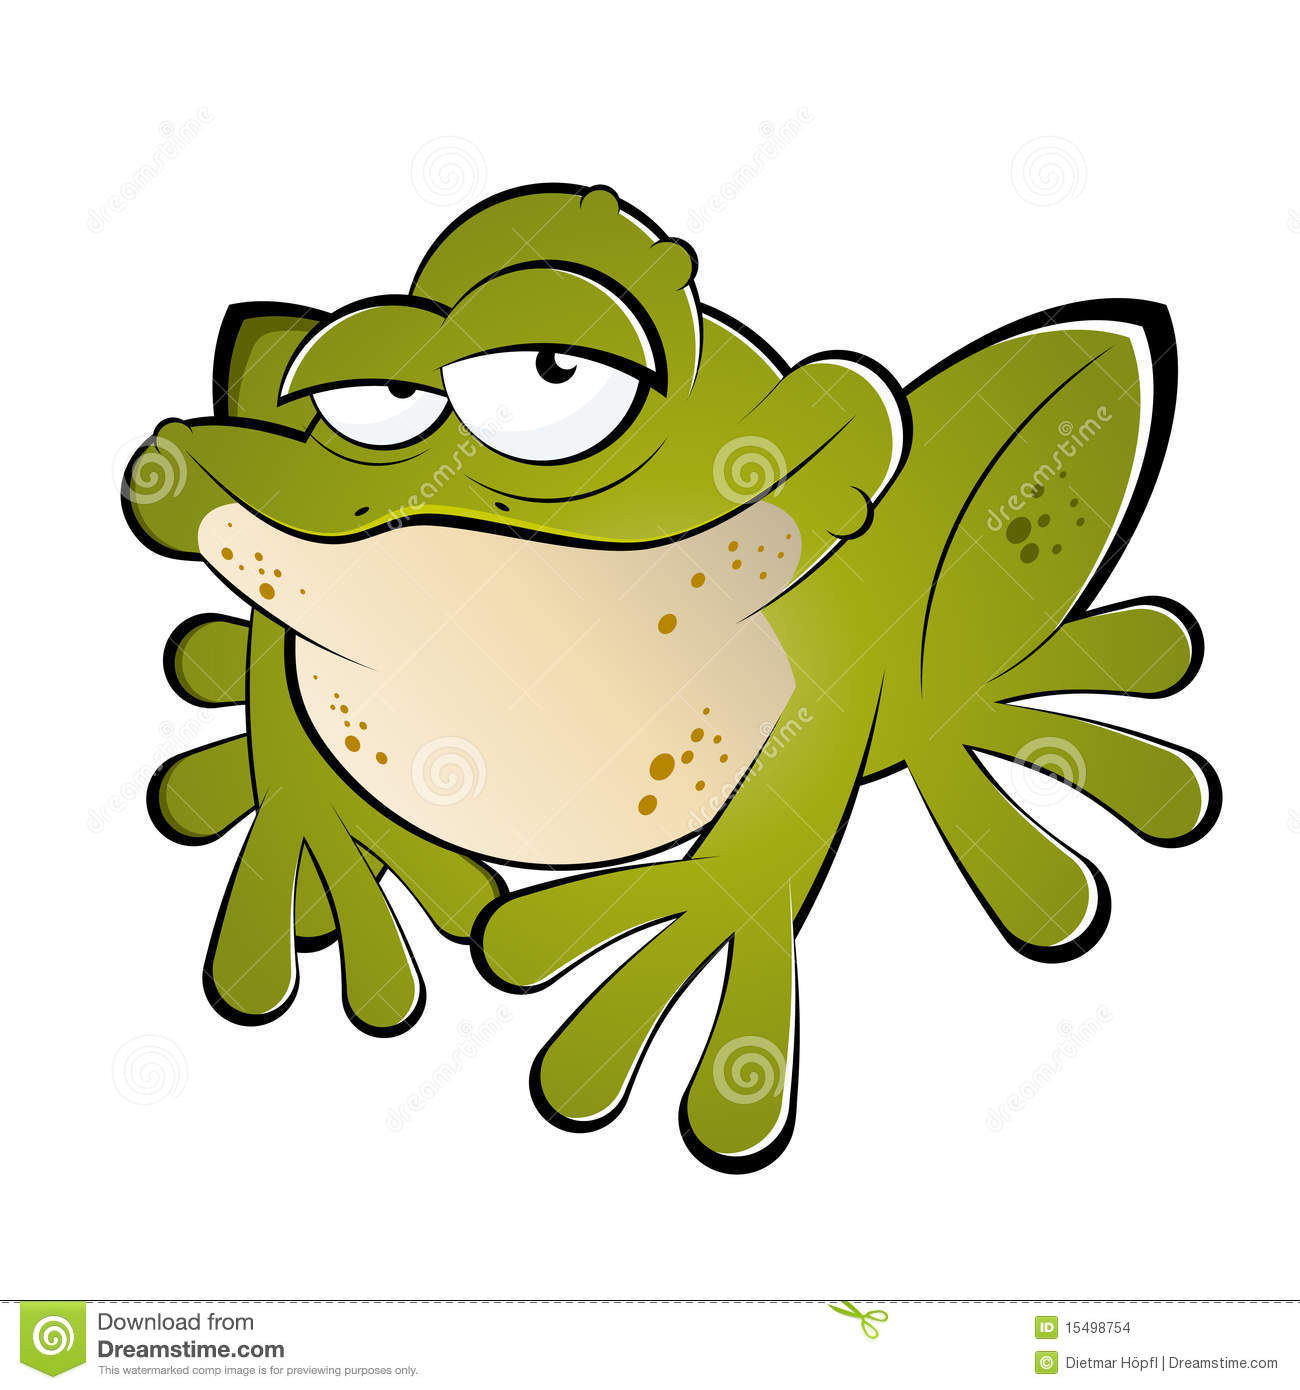 Green cartoon frog